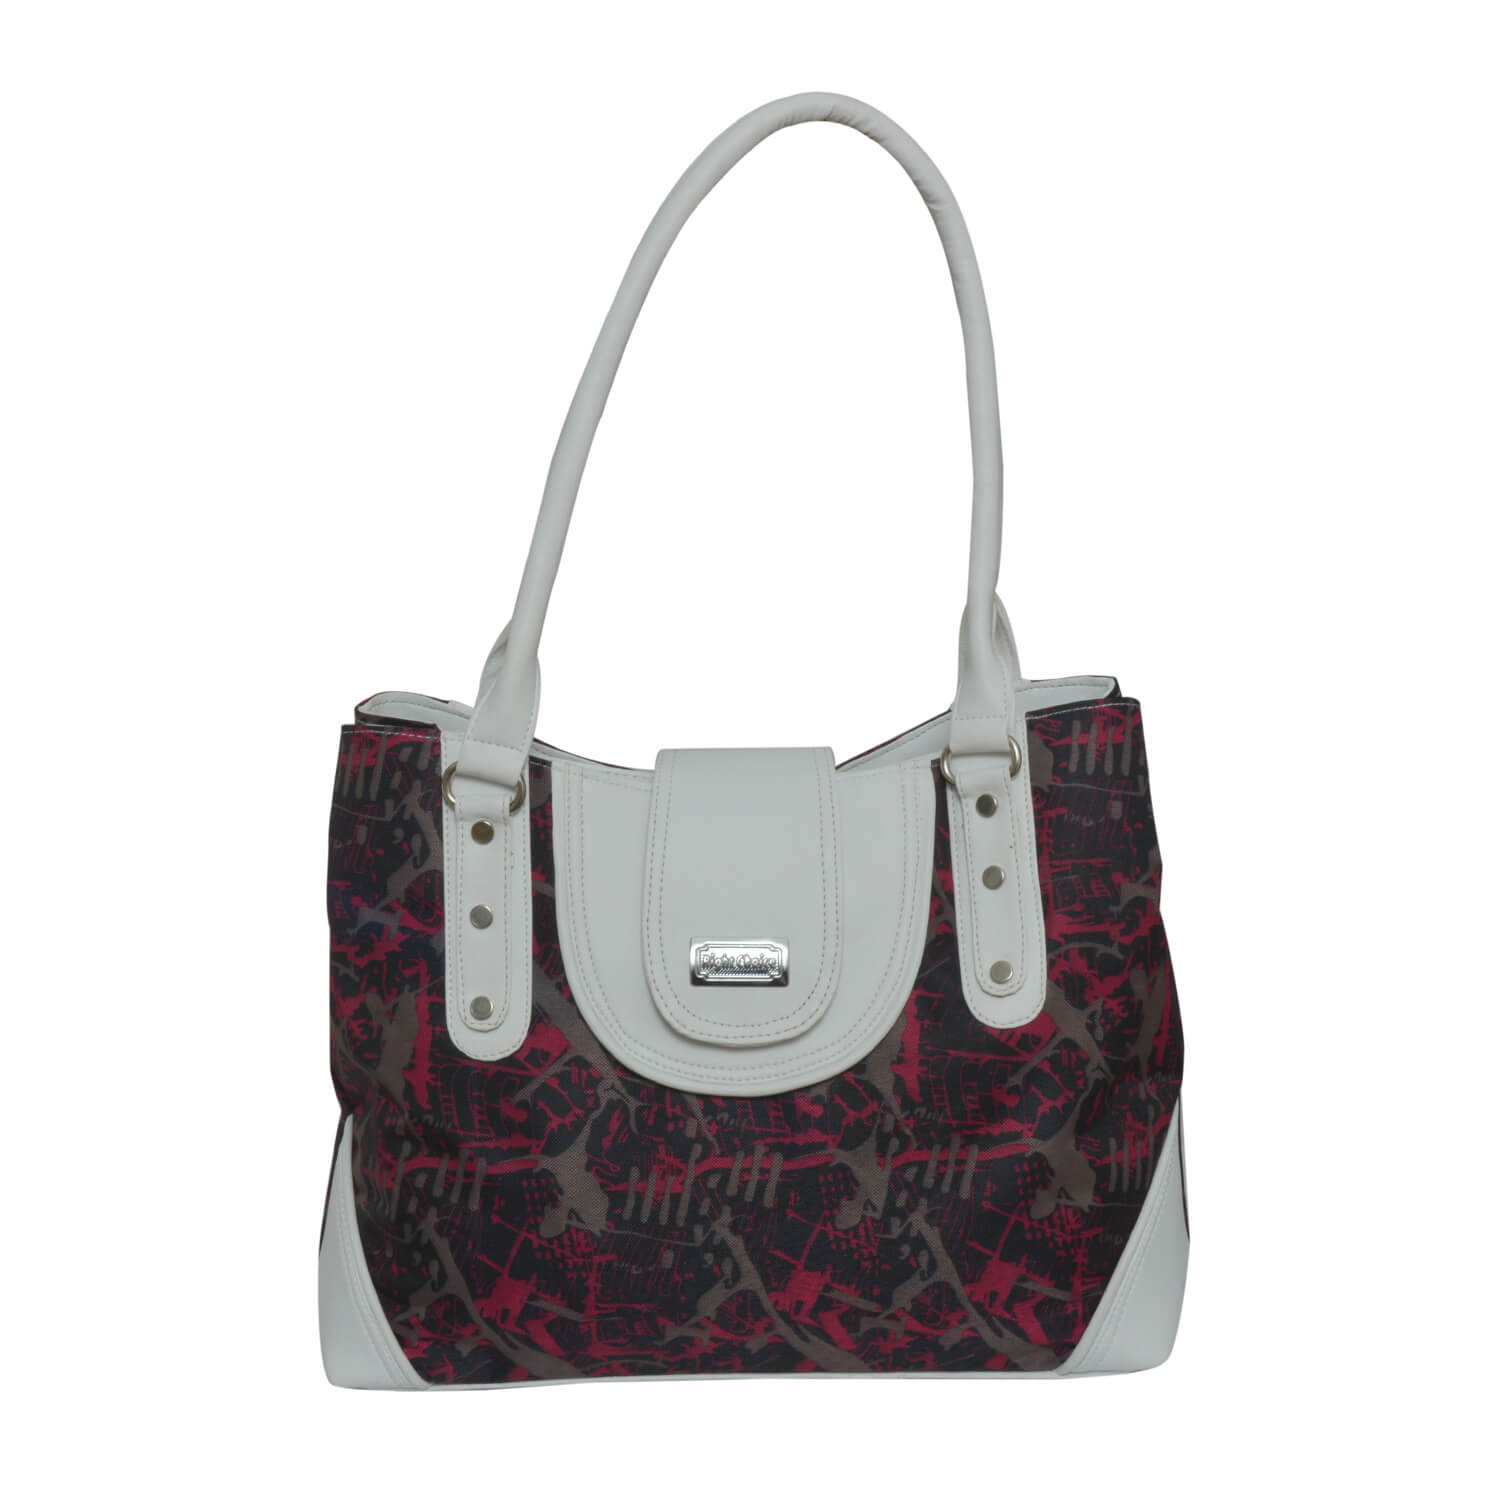 Right Choice RCH307 women's handbags in a modern type